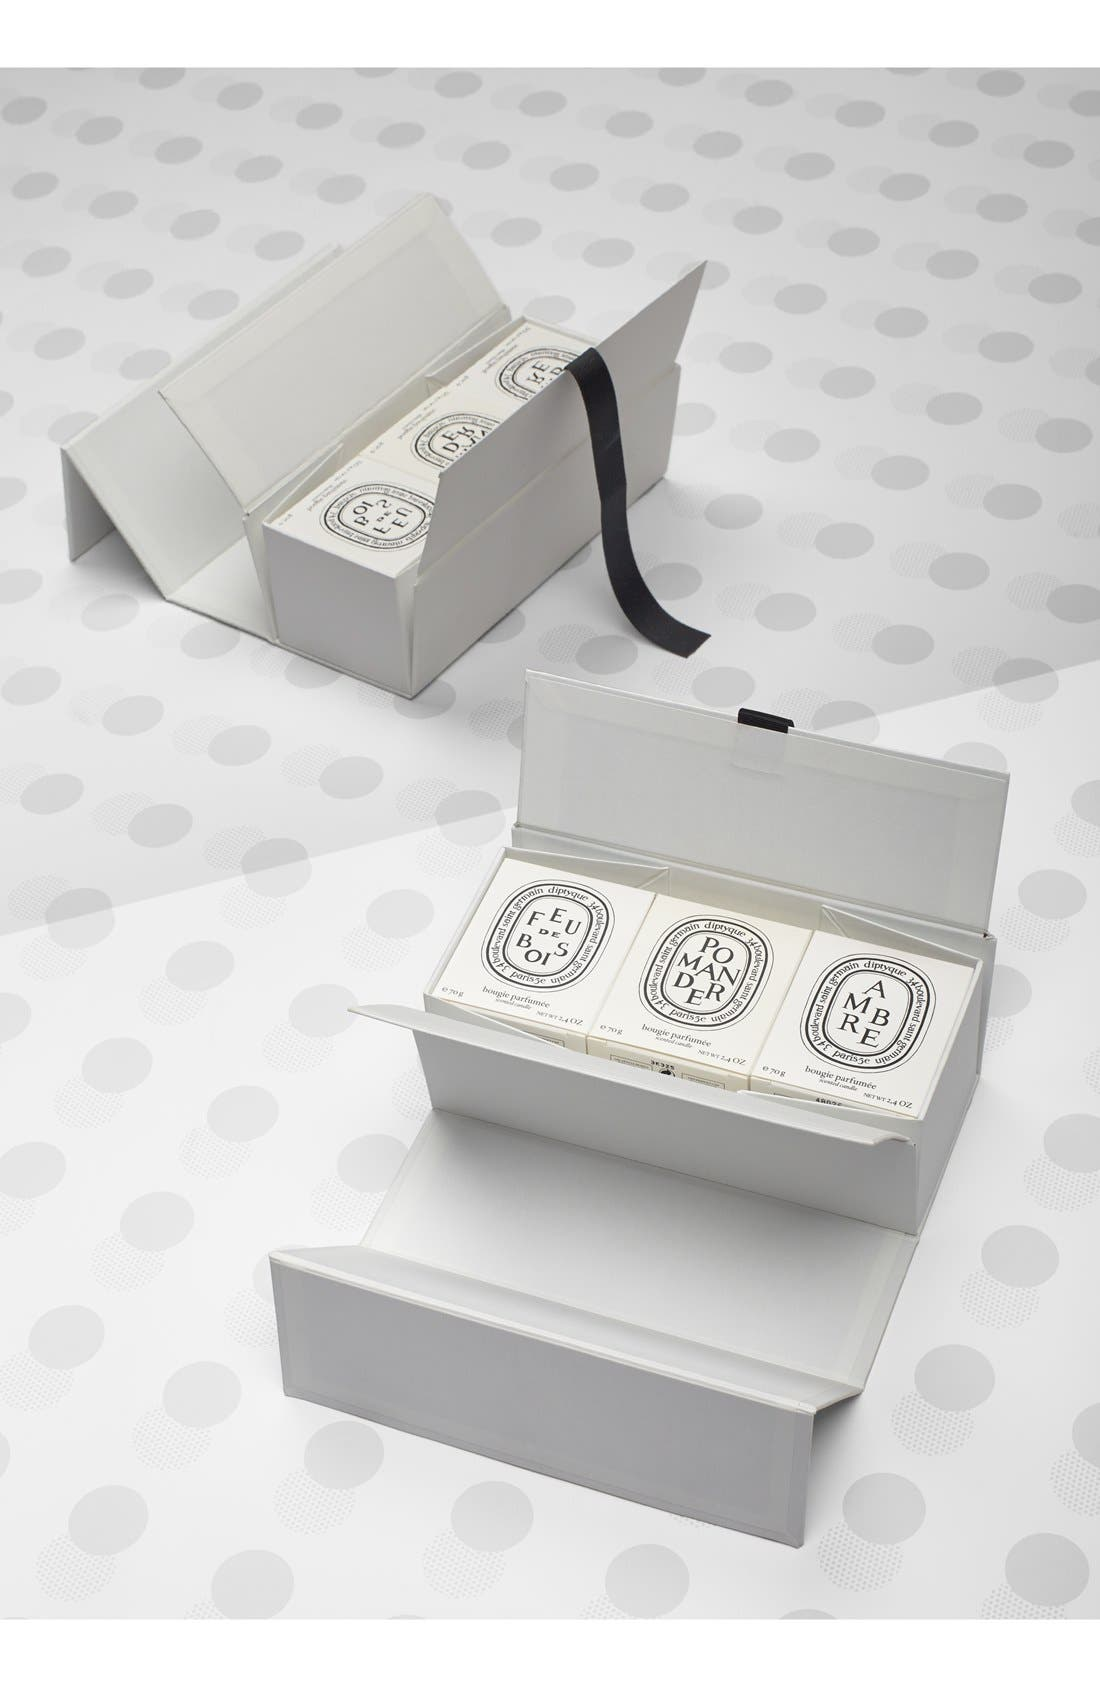 Main Image - diptyque Scented Votive Candles (Set of 3)